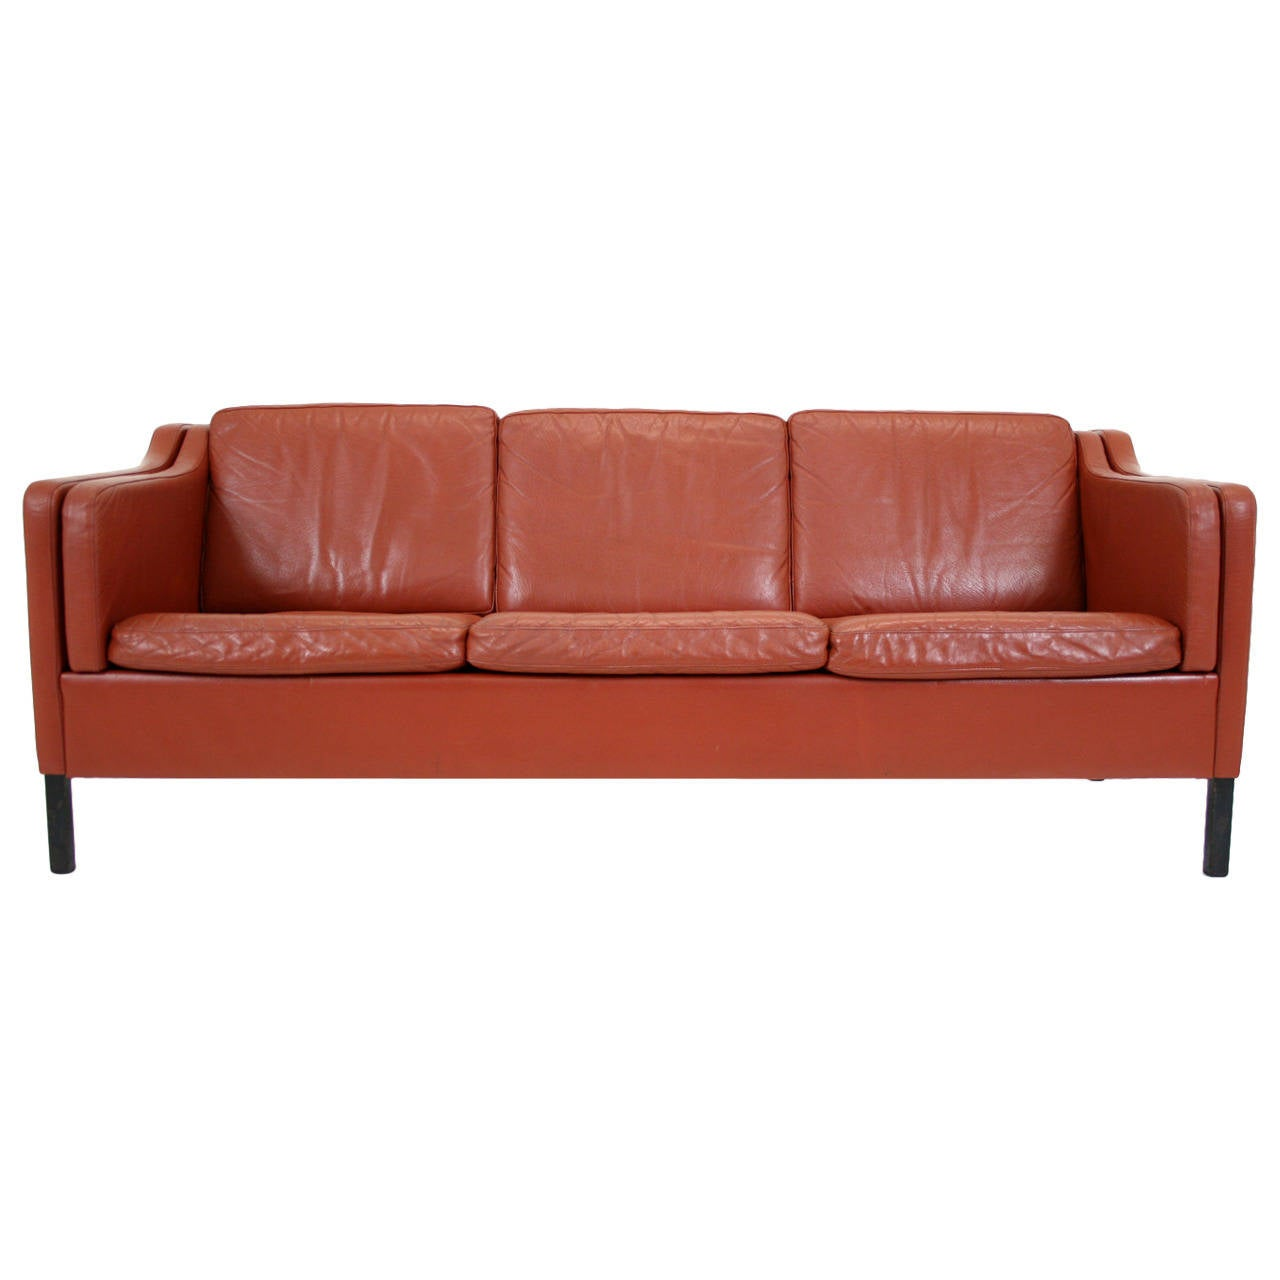 Danish mid century modern leather three seat sofa or for Mid century modern leather chairs